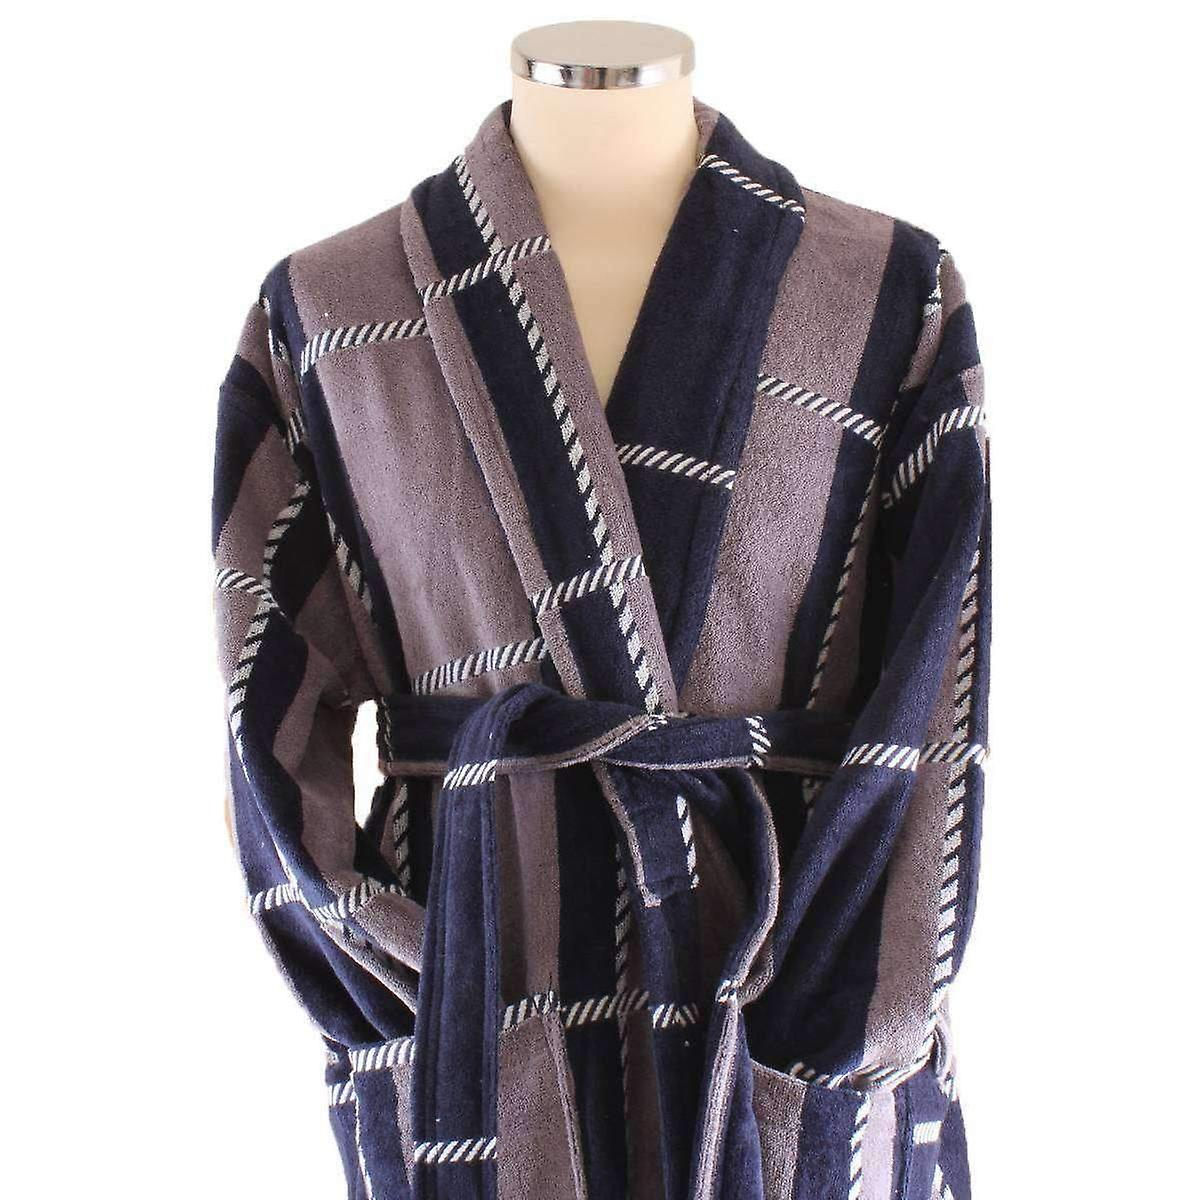 00a581d780 Bown of London Colorado Dressing Gown - Beige/Navy/White | Fruugo